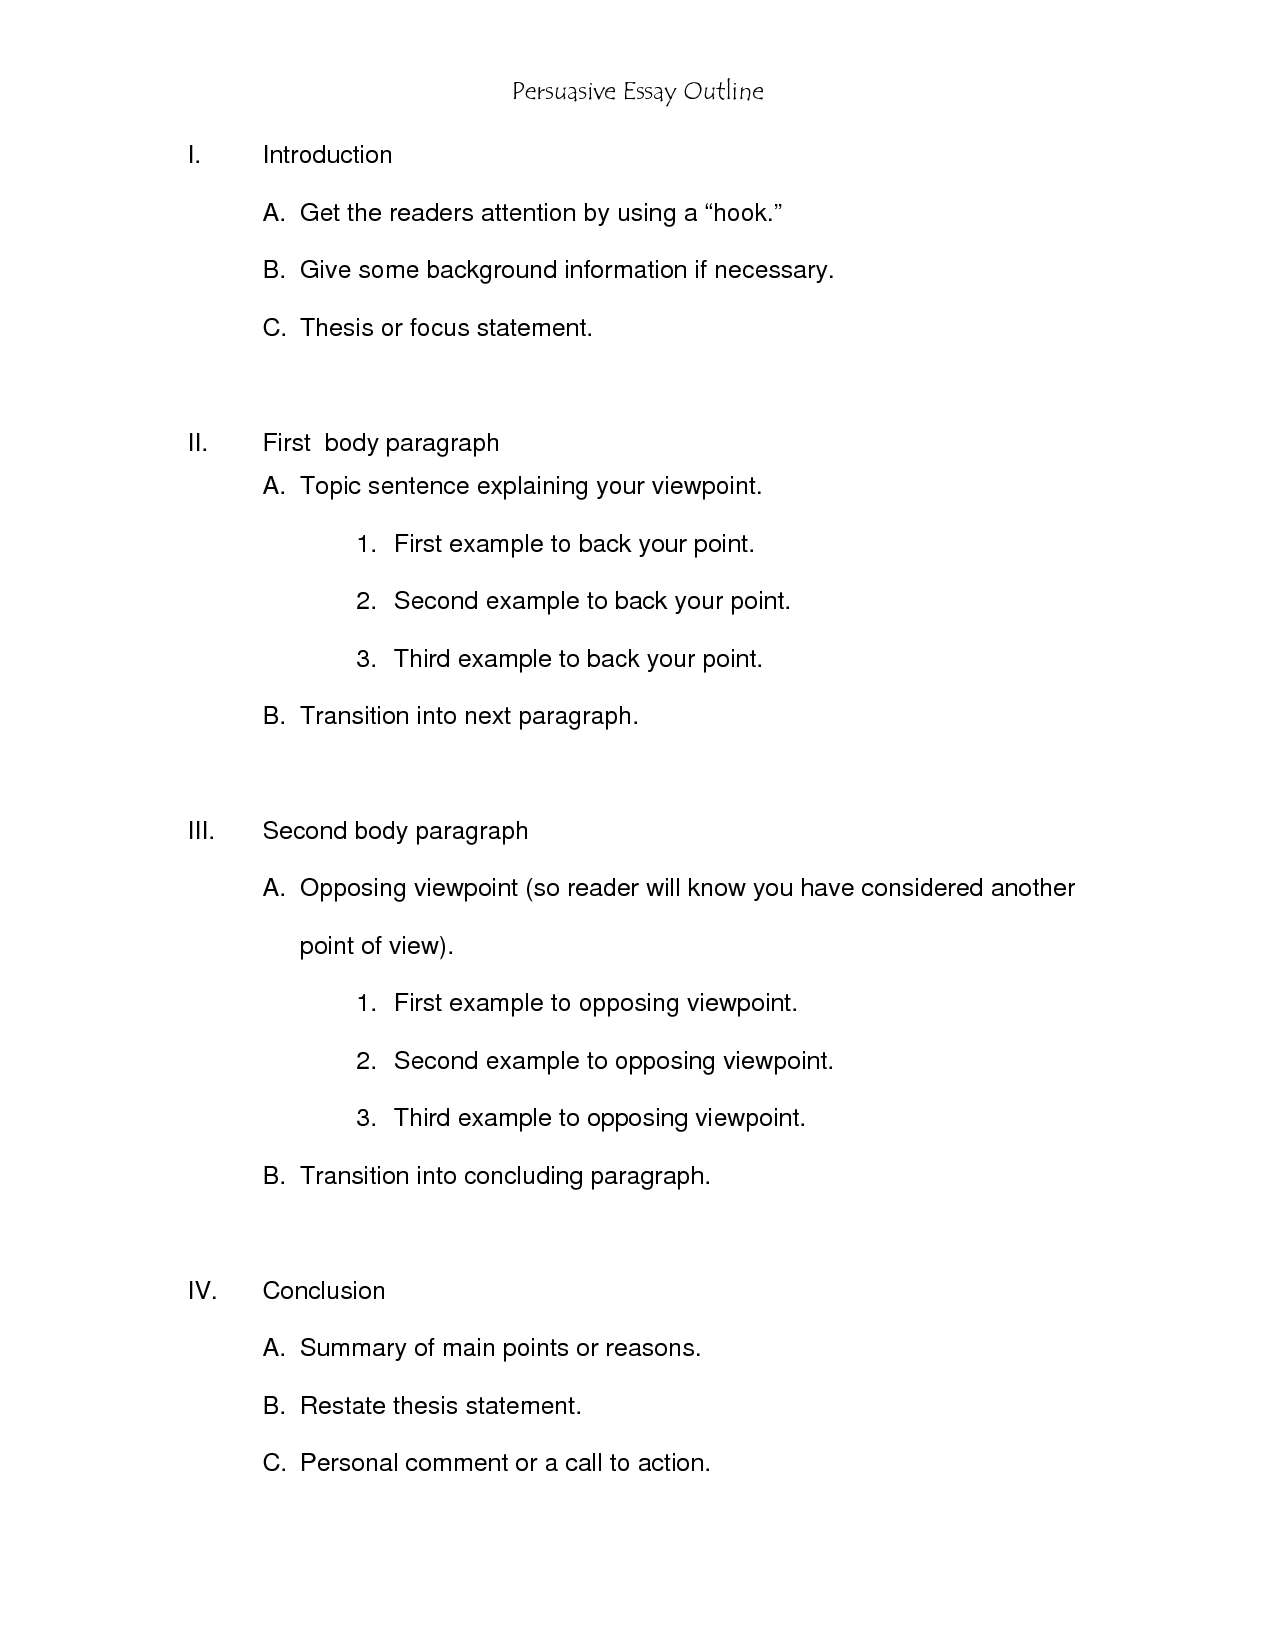 pursuasive speech outline essay Free essay: persuasive speech outline topic: why you should give up smoking proposition: give up smoking and you will save yourself and the others around you.